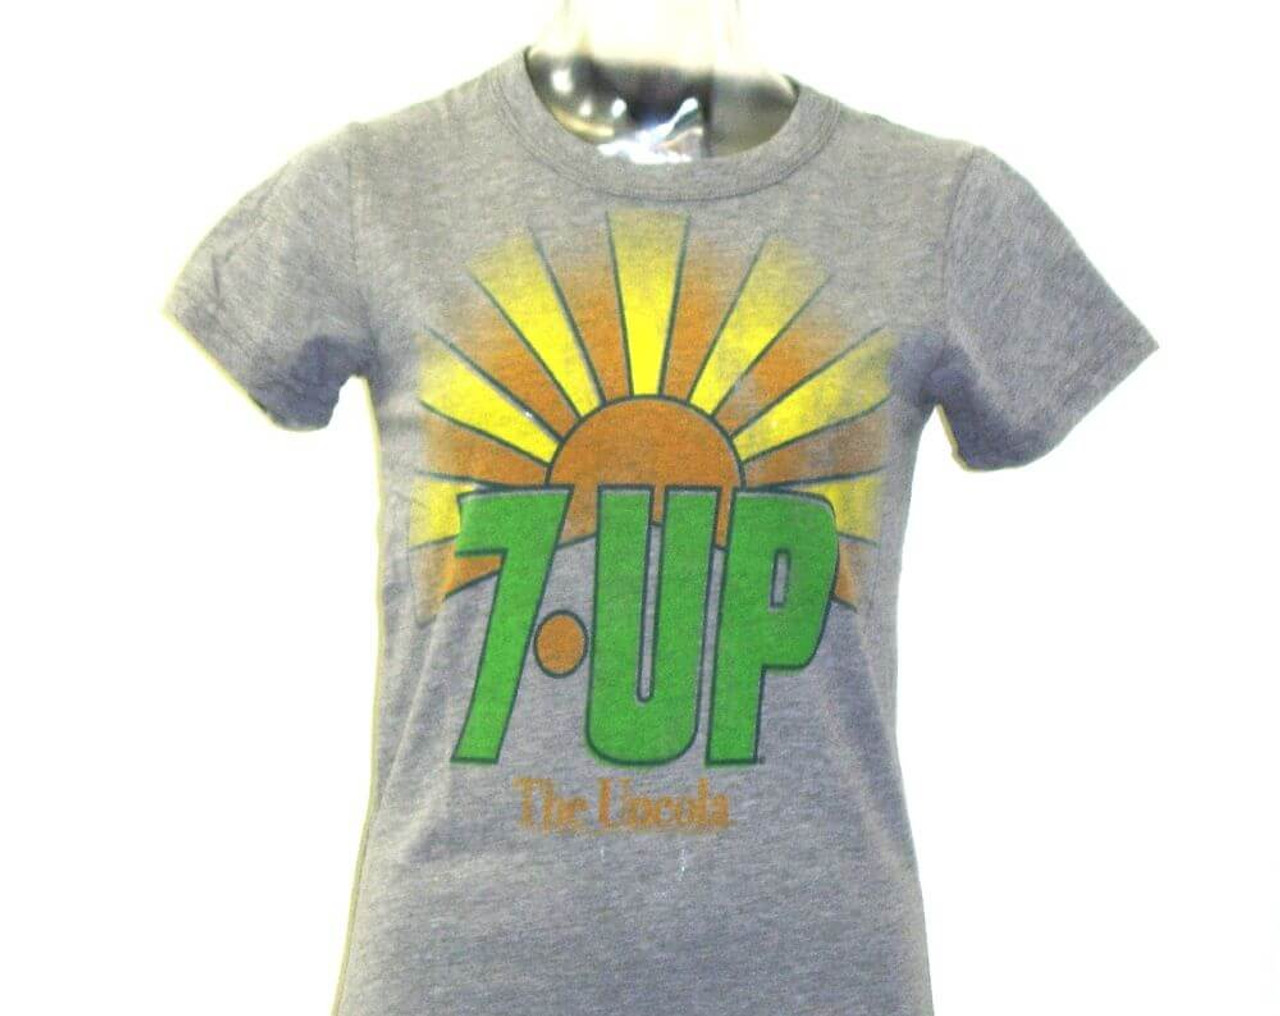 7up Women S Vintage T Shirt Uncola Classic Advertising Slogan